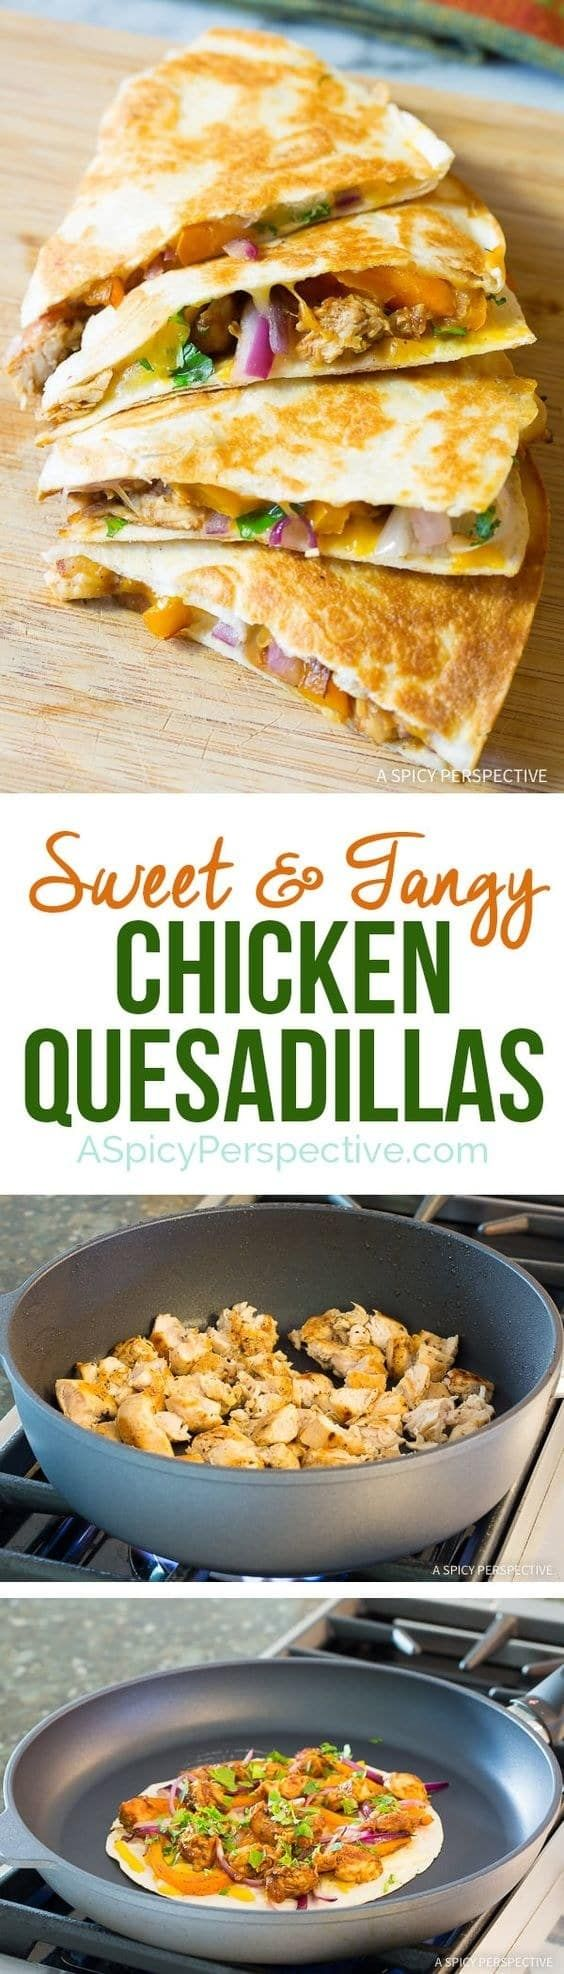 Sweet and Tangy Chicken Quesadillas